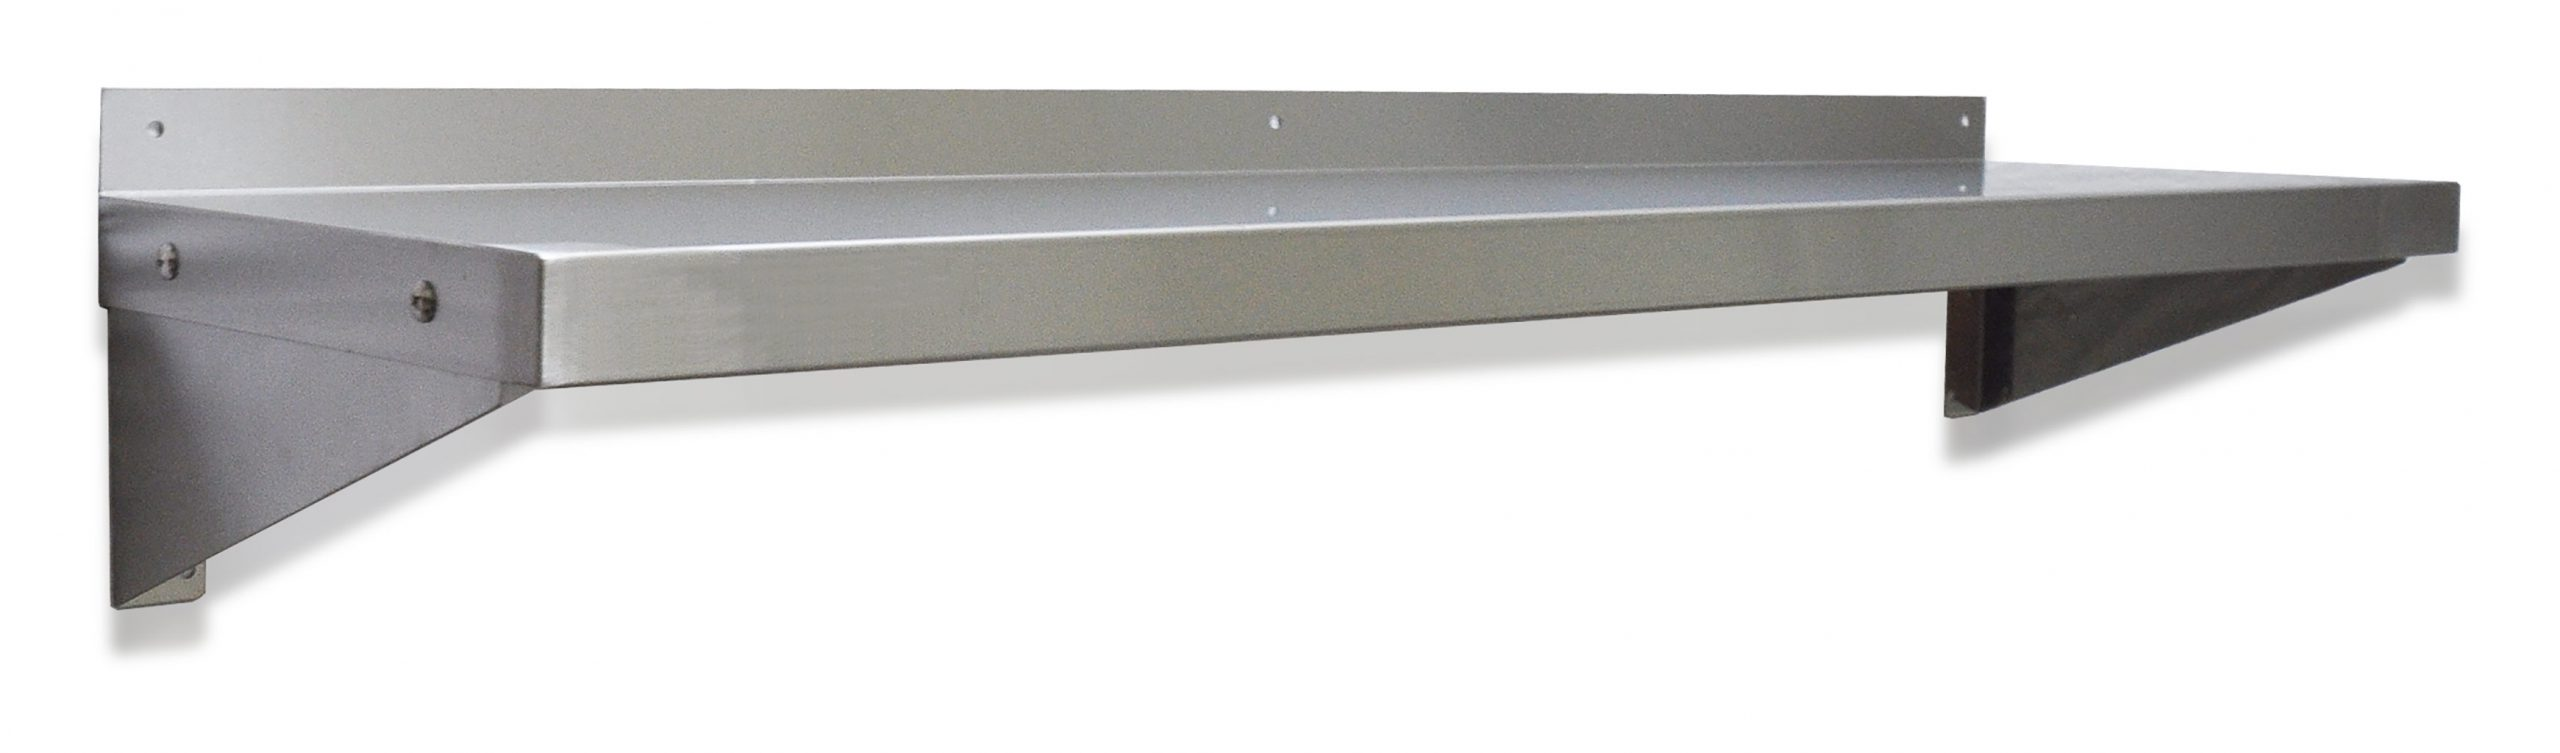 Stainless Steel Wall Shelves, 1200 X 300mm deep.